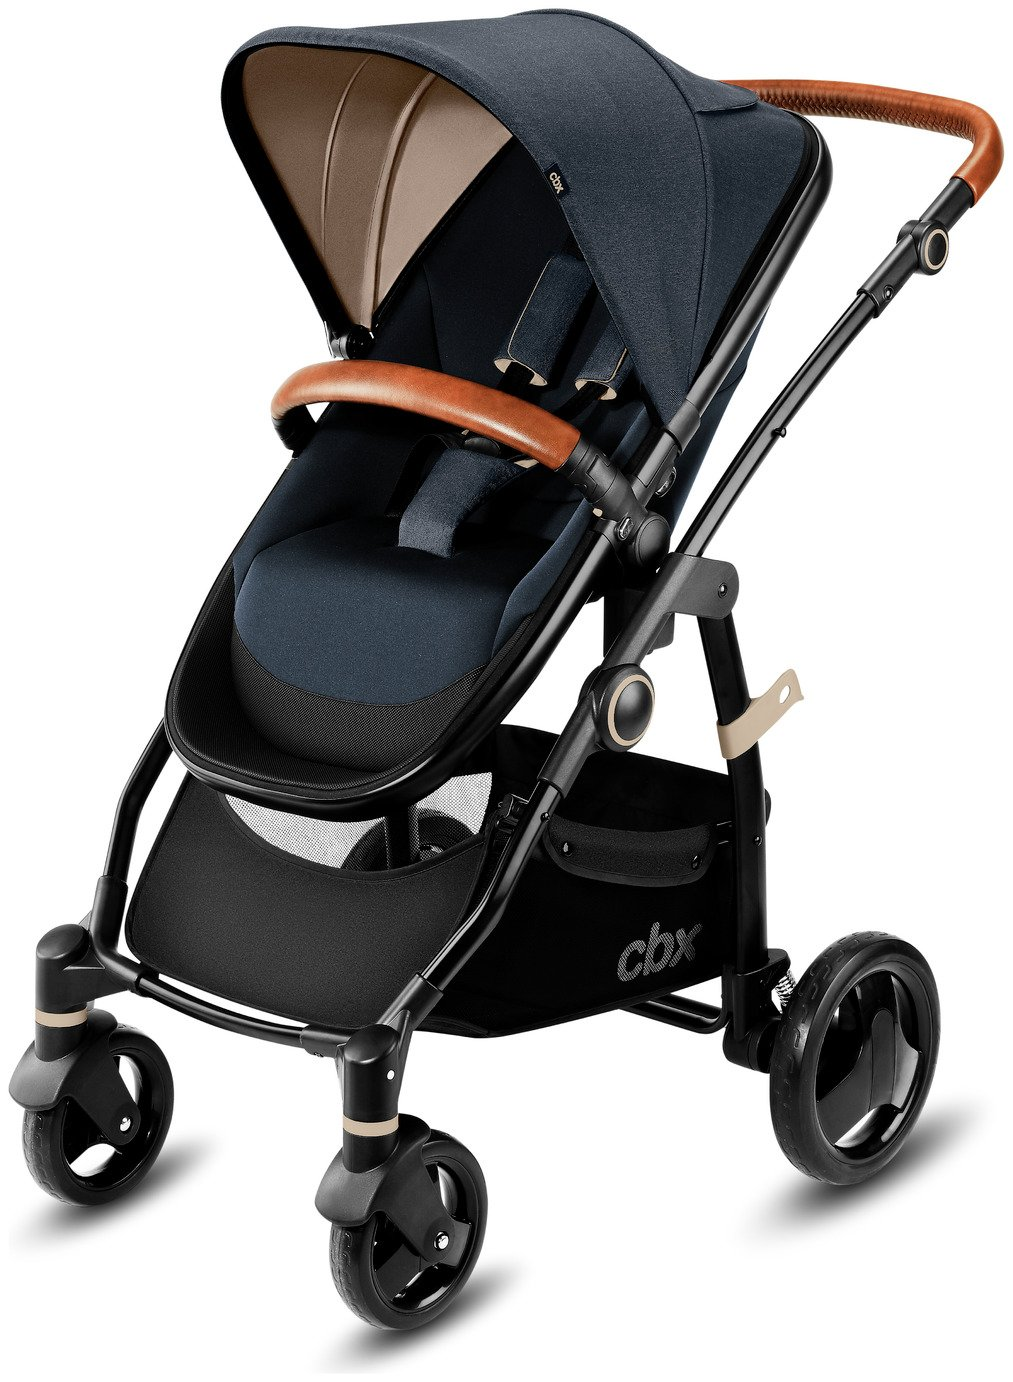 Image of CBX Leotie Lux Pushchair and Carry Cot – Jeansy Blue 2019